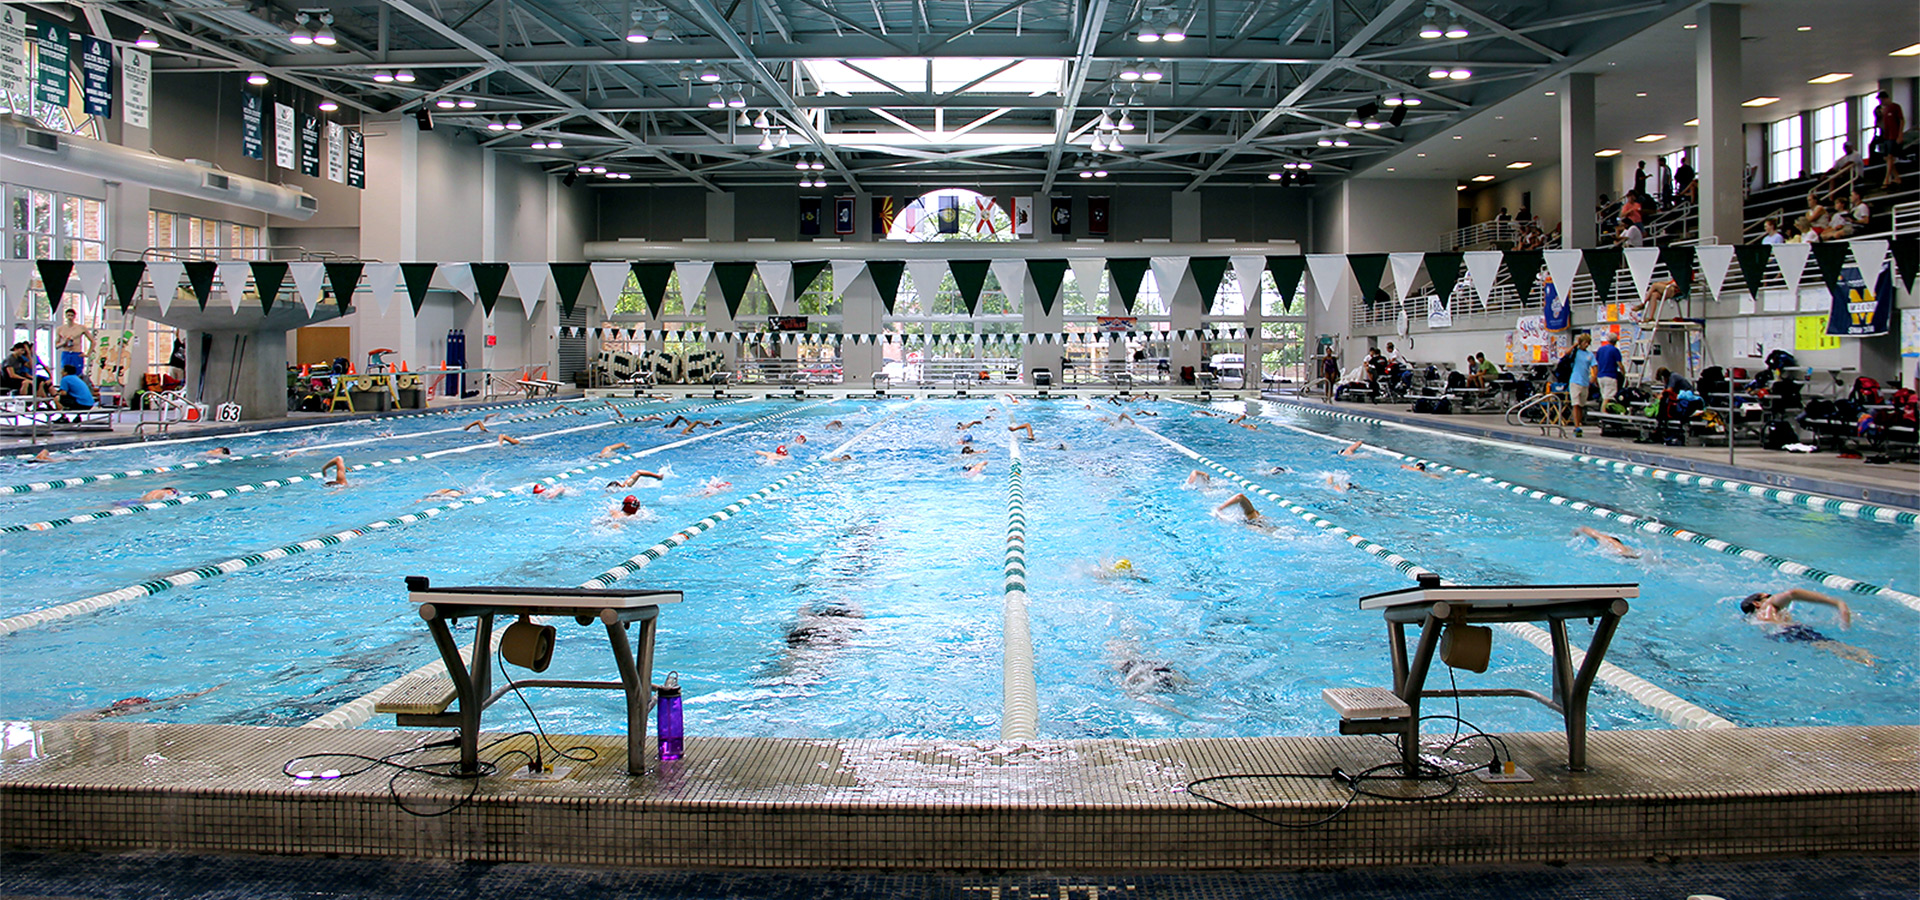 Caption: The Delta State Aquatics Center includes a 60-meter by 25-yard pool and has enough seating to accommodate over 2,500 people.